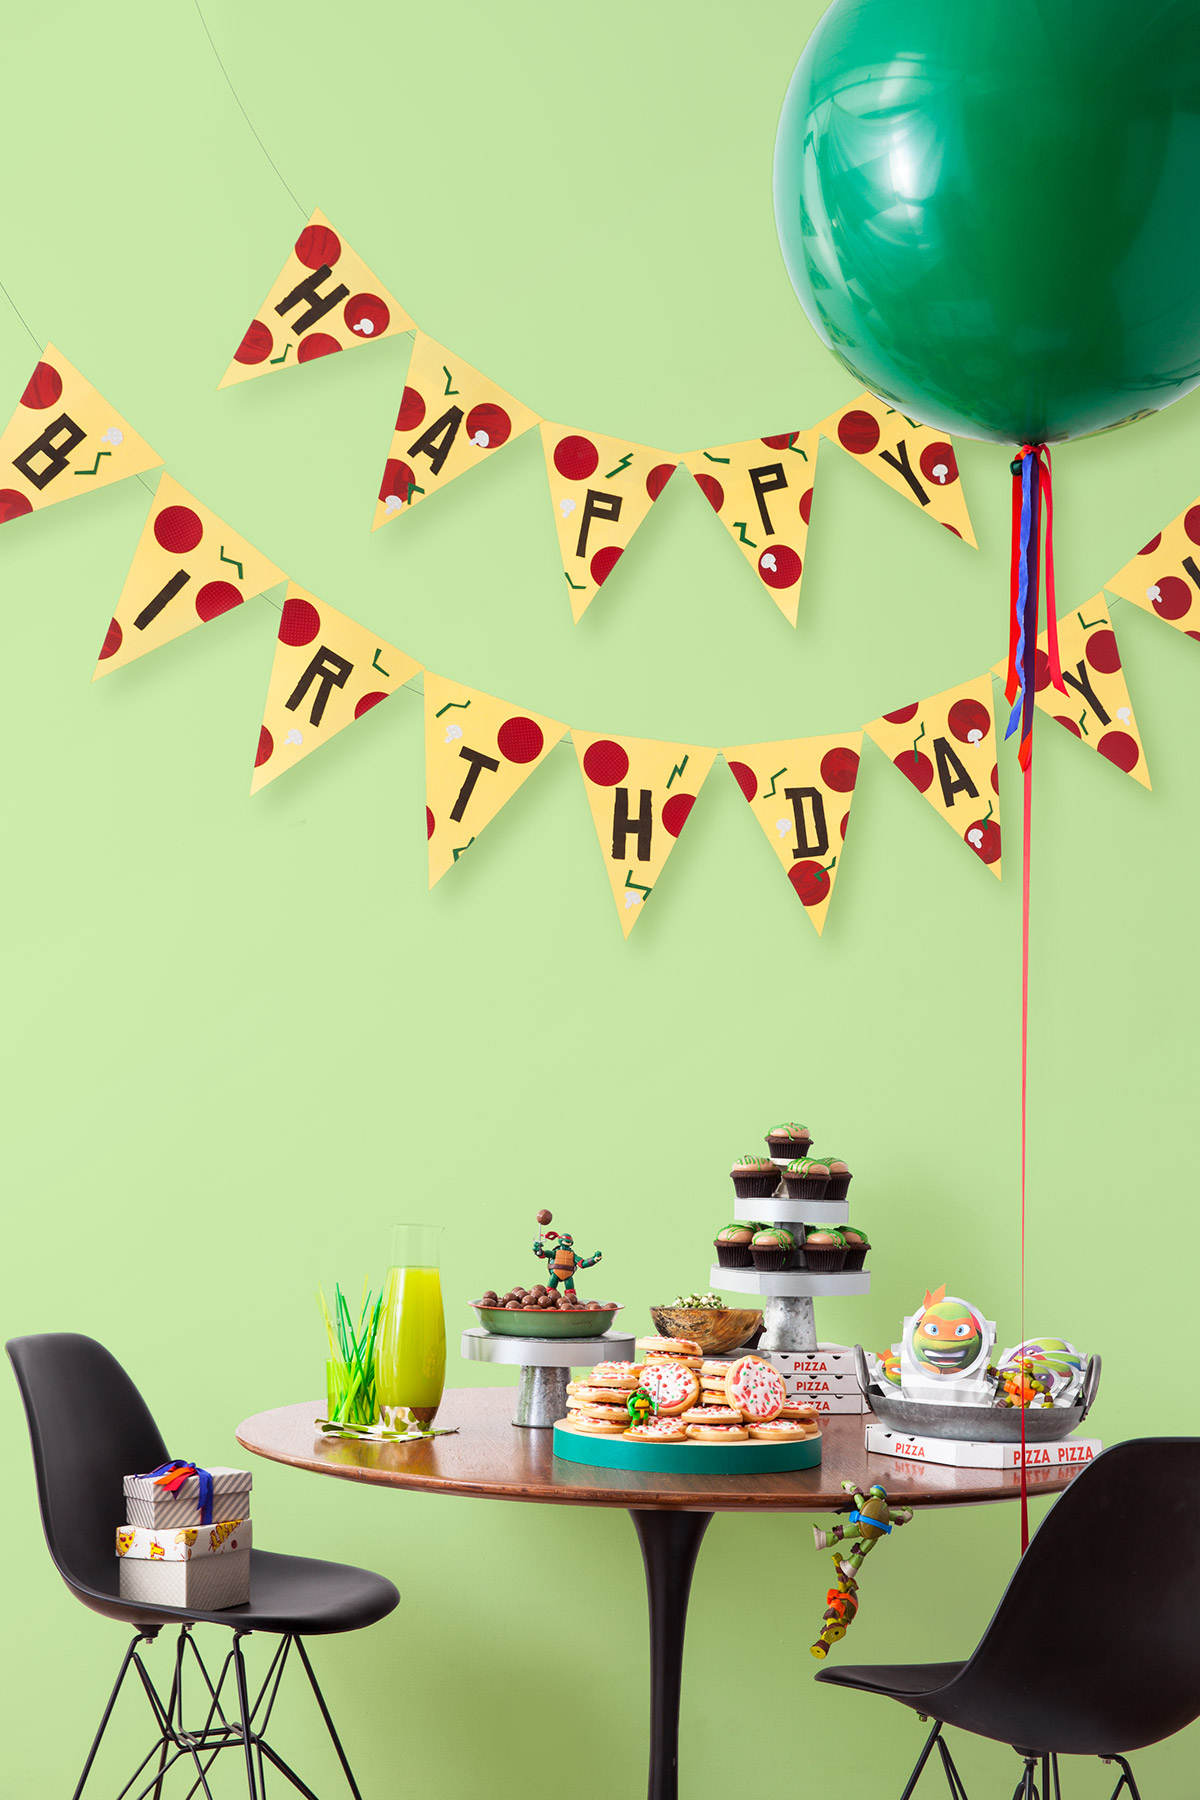 Tmnt Printable Pizza Pendant Birthday Banner | Nickelodeon Parents - Free Printable Ninja Turtle Birthday Banner